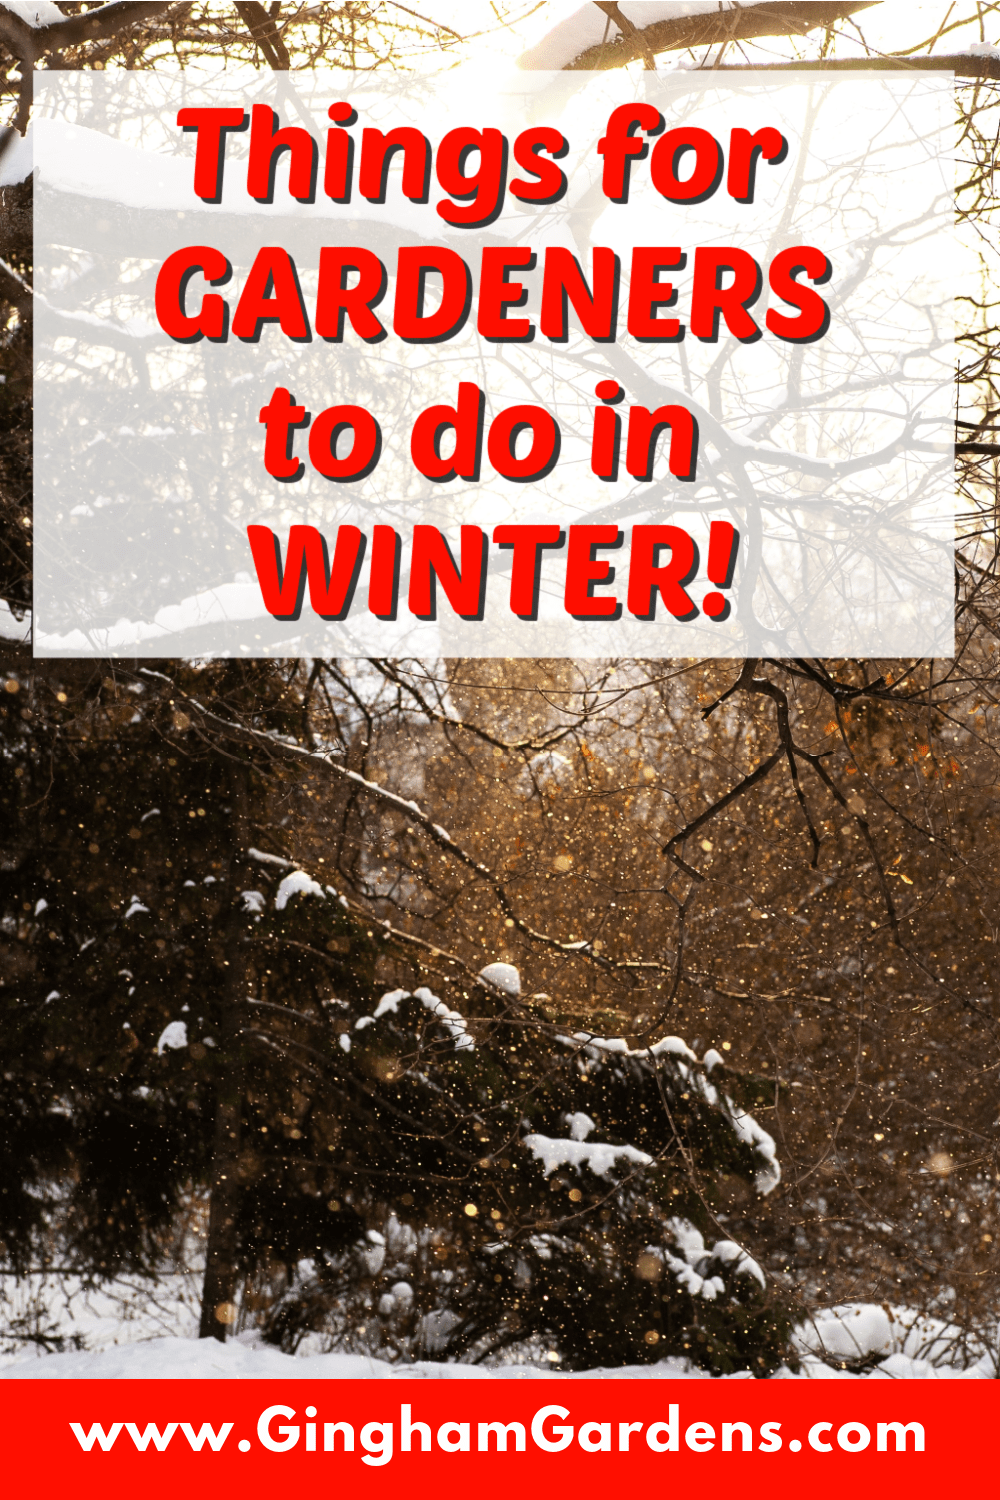 Image of Winter Scene with text overlay - Things for Gardeners to do in Winter